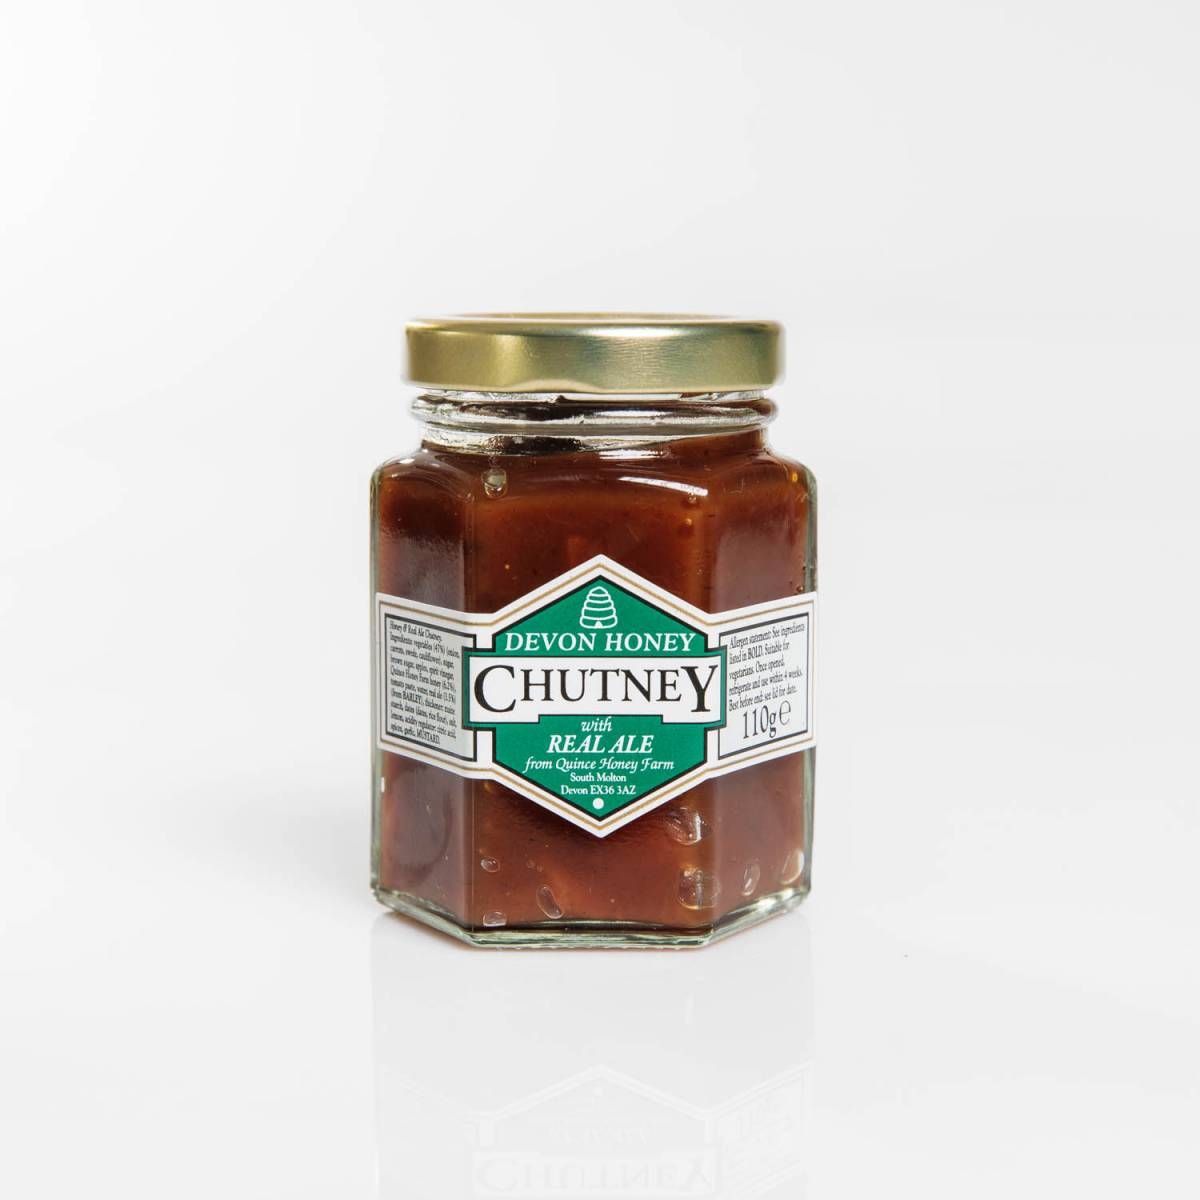 devon honey & real ale chutney 105g